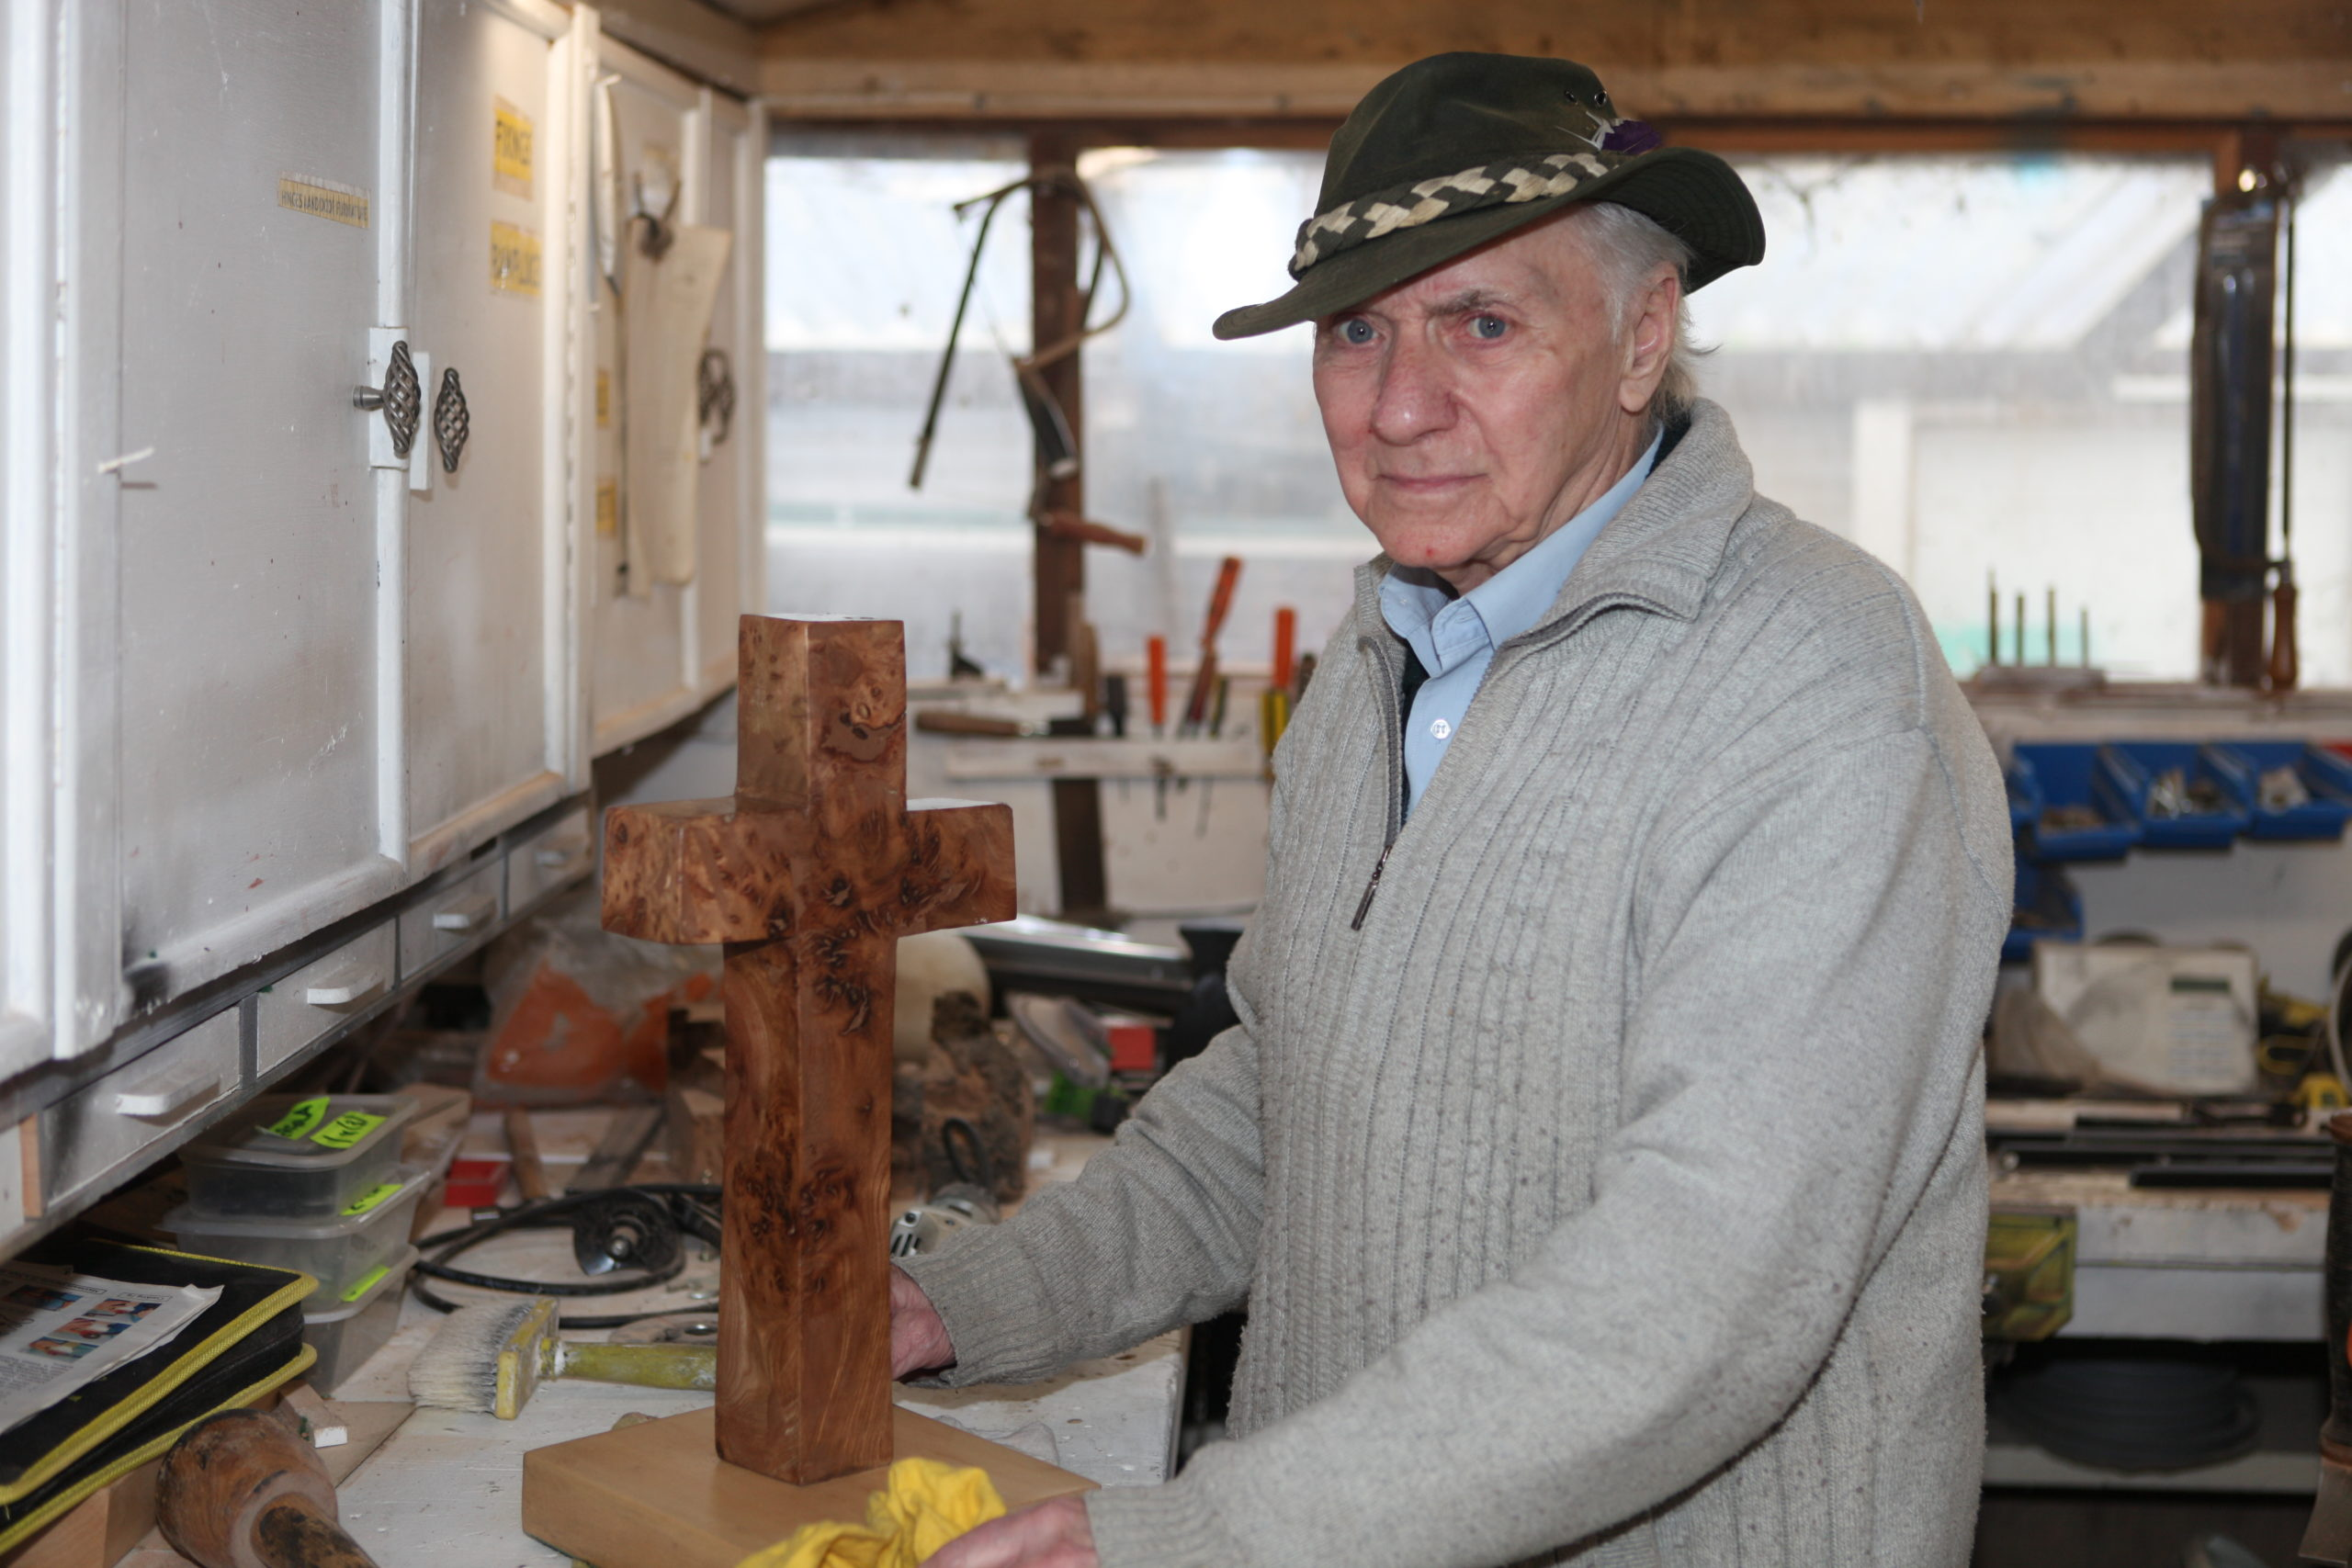 Brian crafting a wooden cross in his workshop